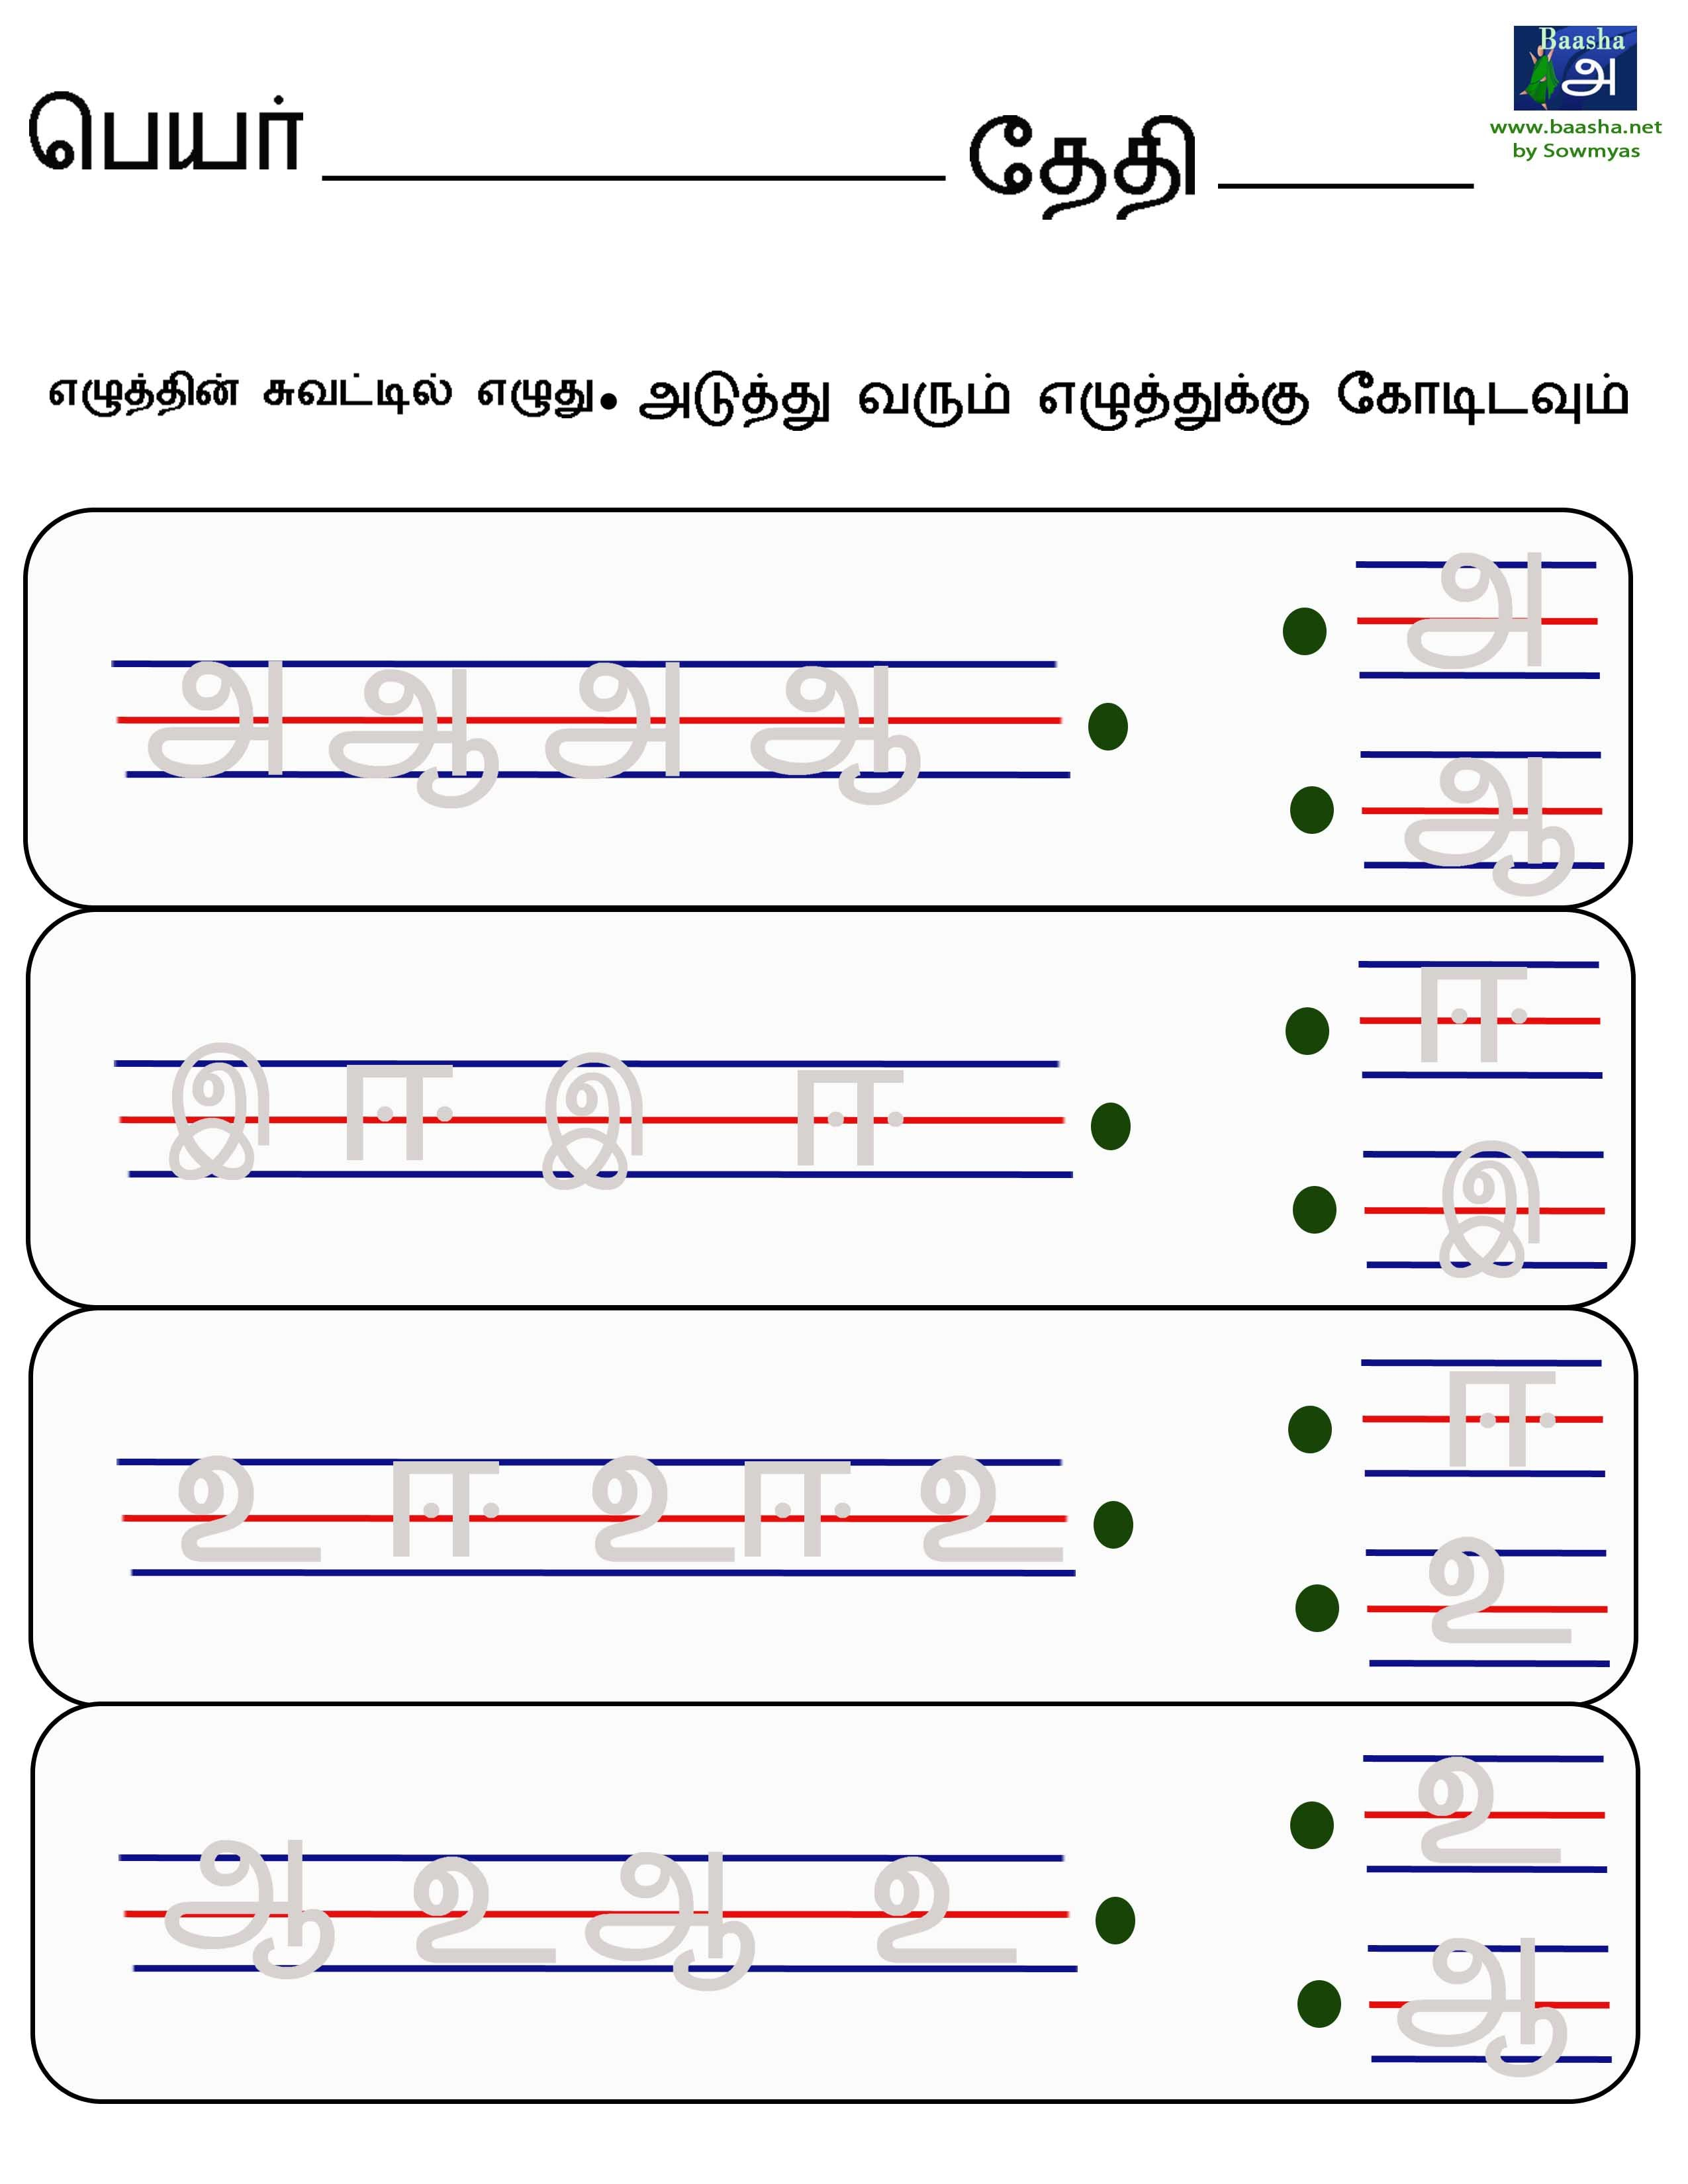 Snap Tamil Alphabets Writing Worksheets The Best and Most ... photos ...